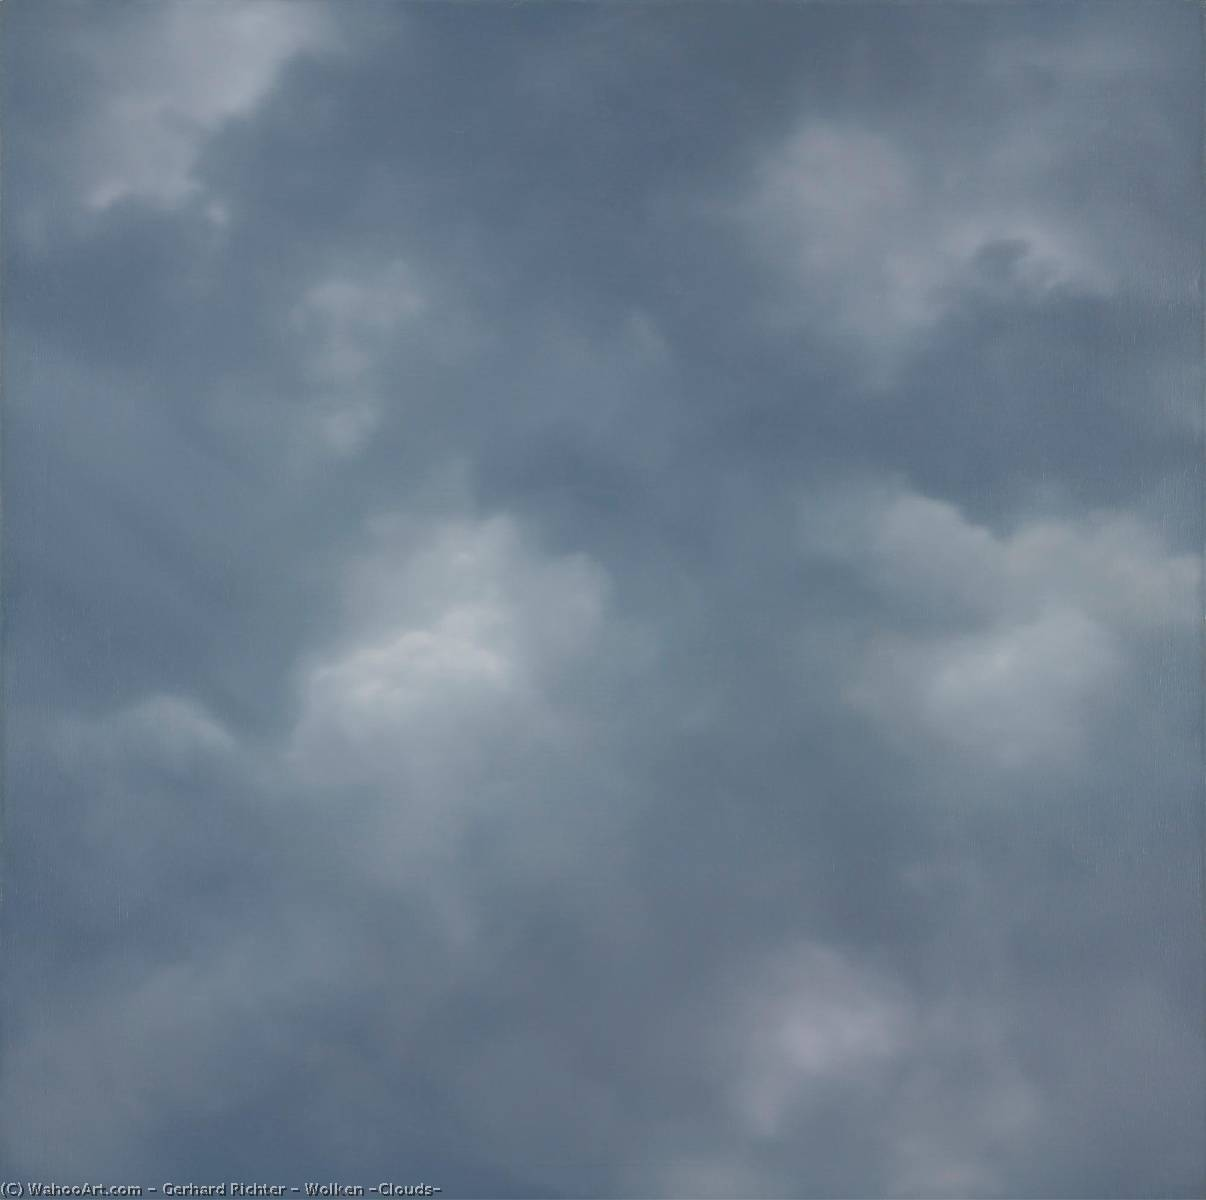 Wolken (Clouds), Oil On Canvas by Gerhard Richter